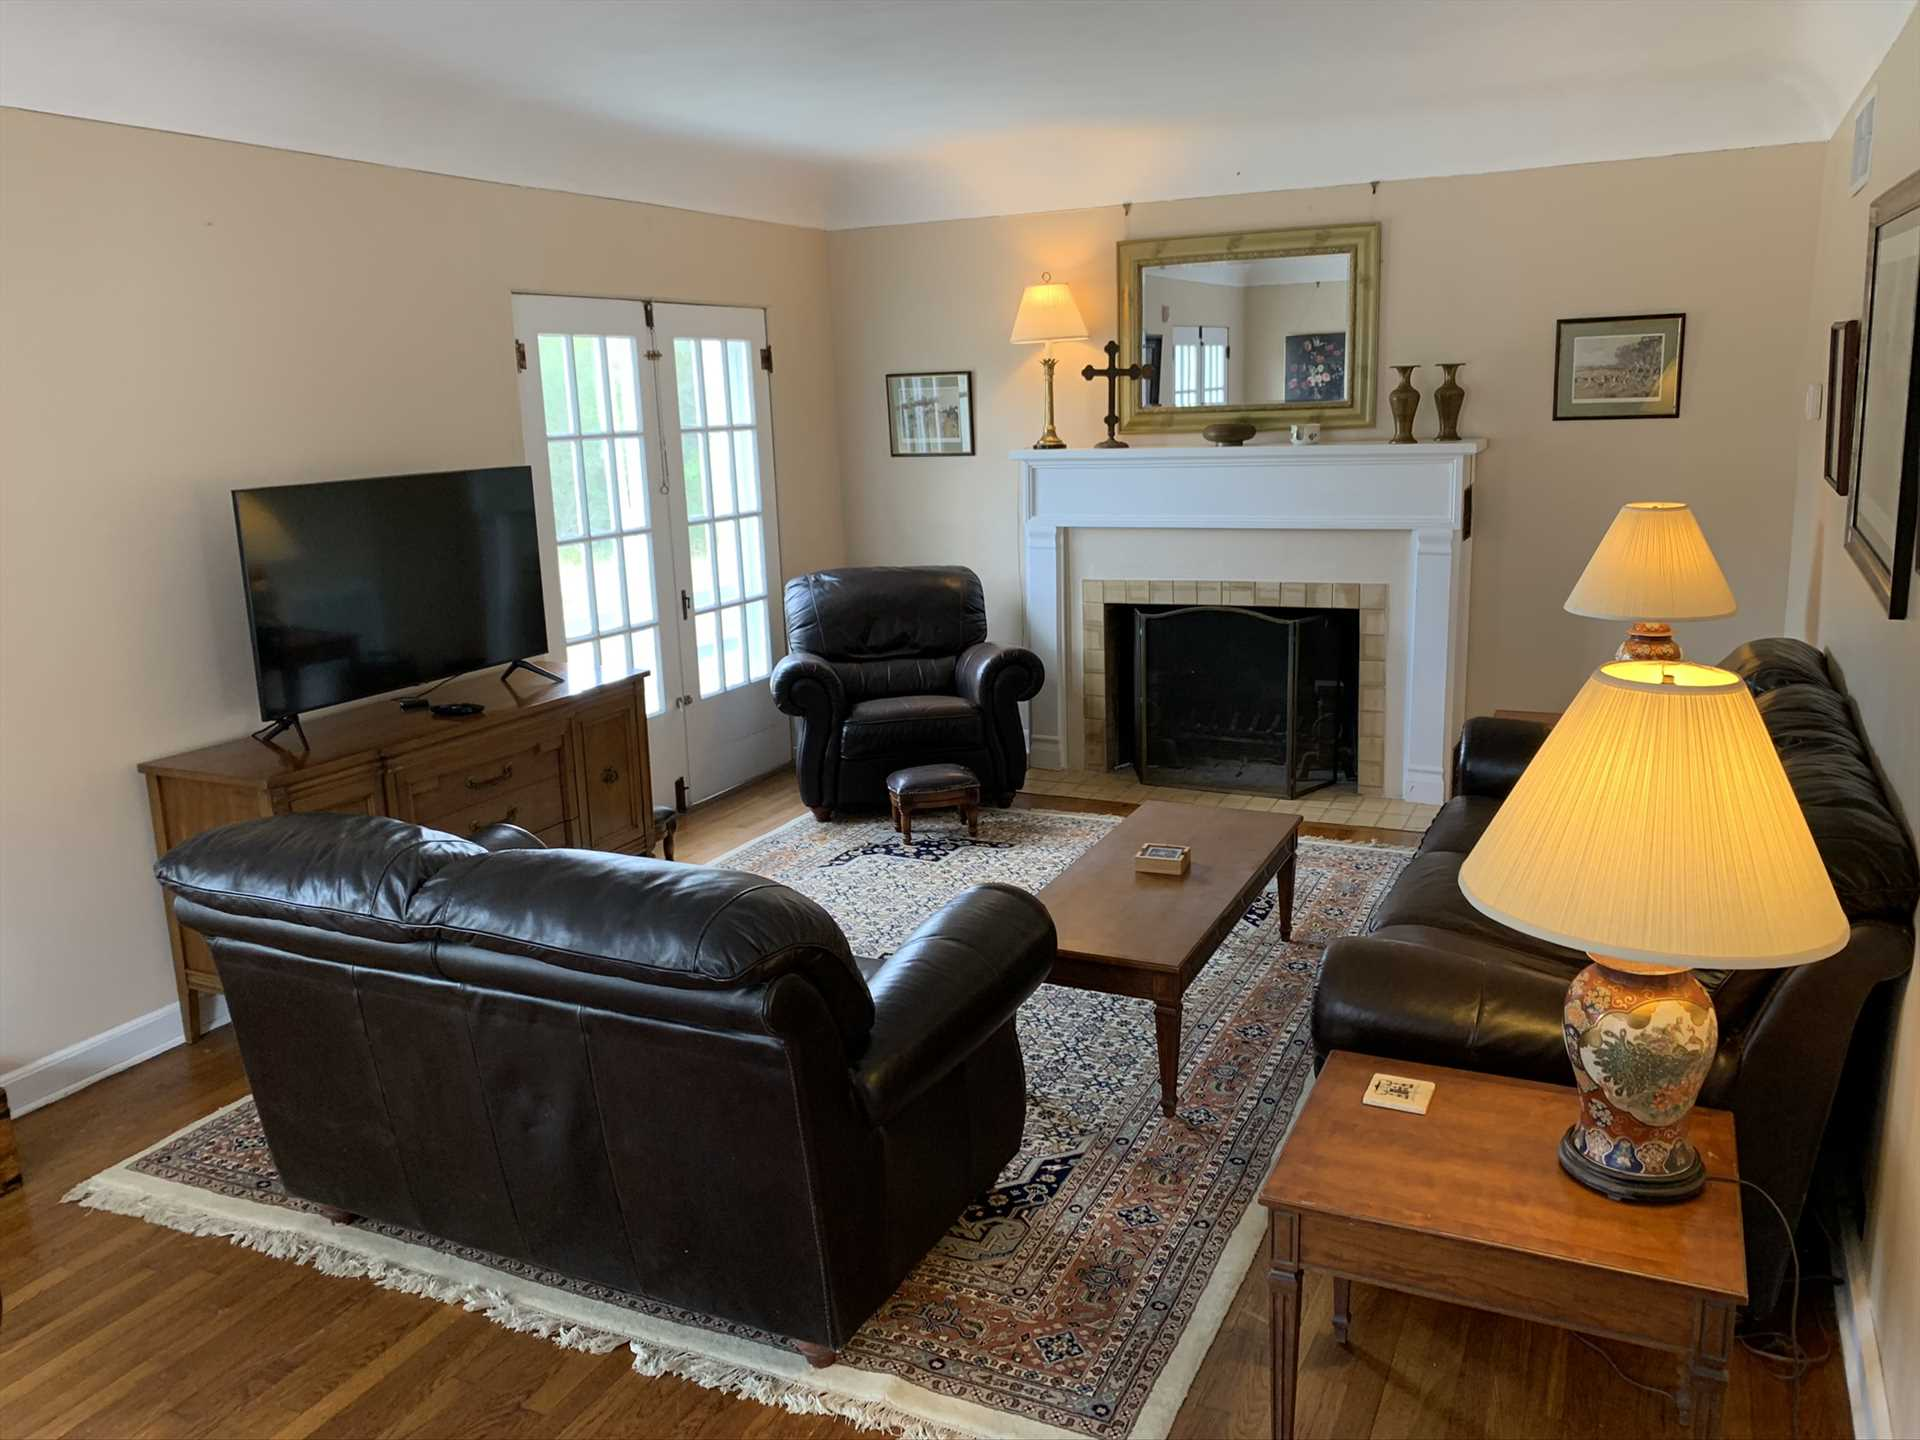 The comfortable living room features plush furniture, TV with Roku, and there's Wifi Internet service and central air and heating throughout the house.